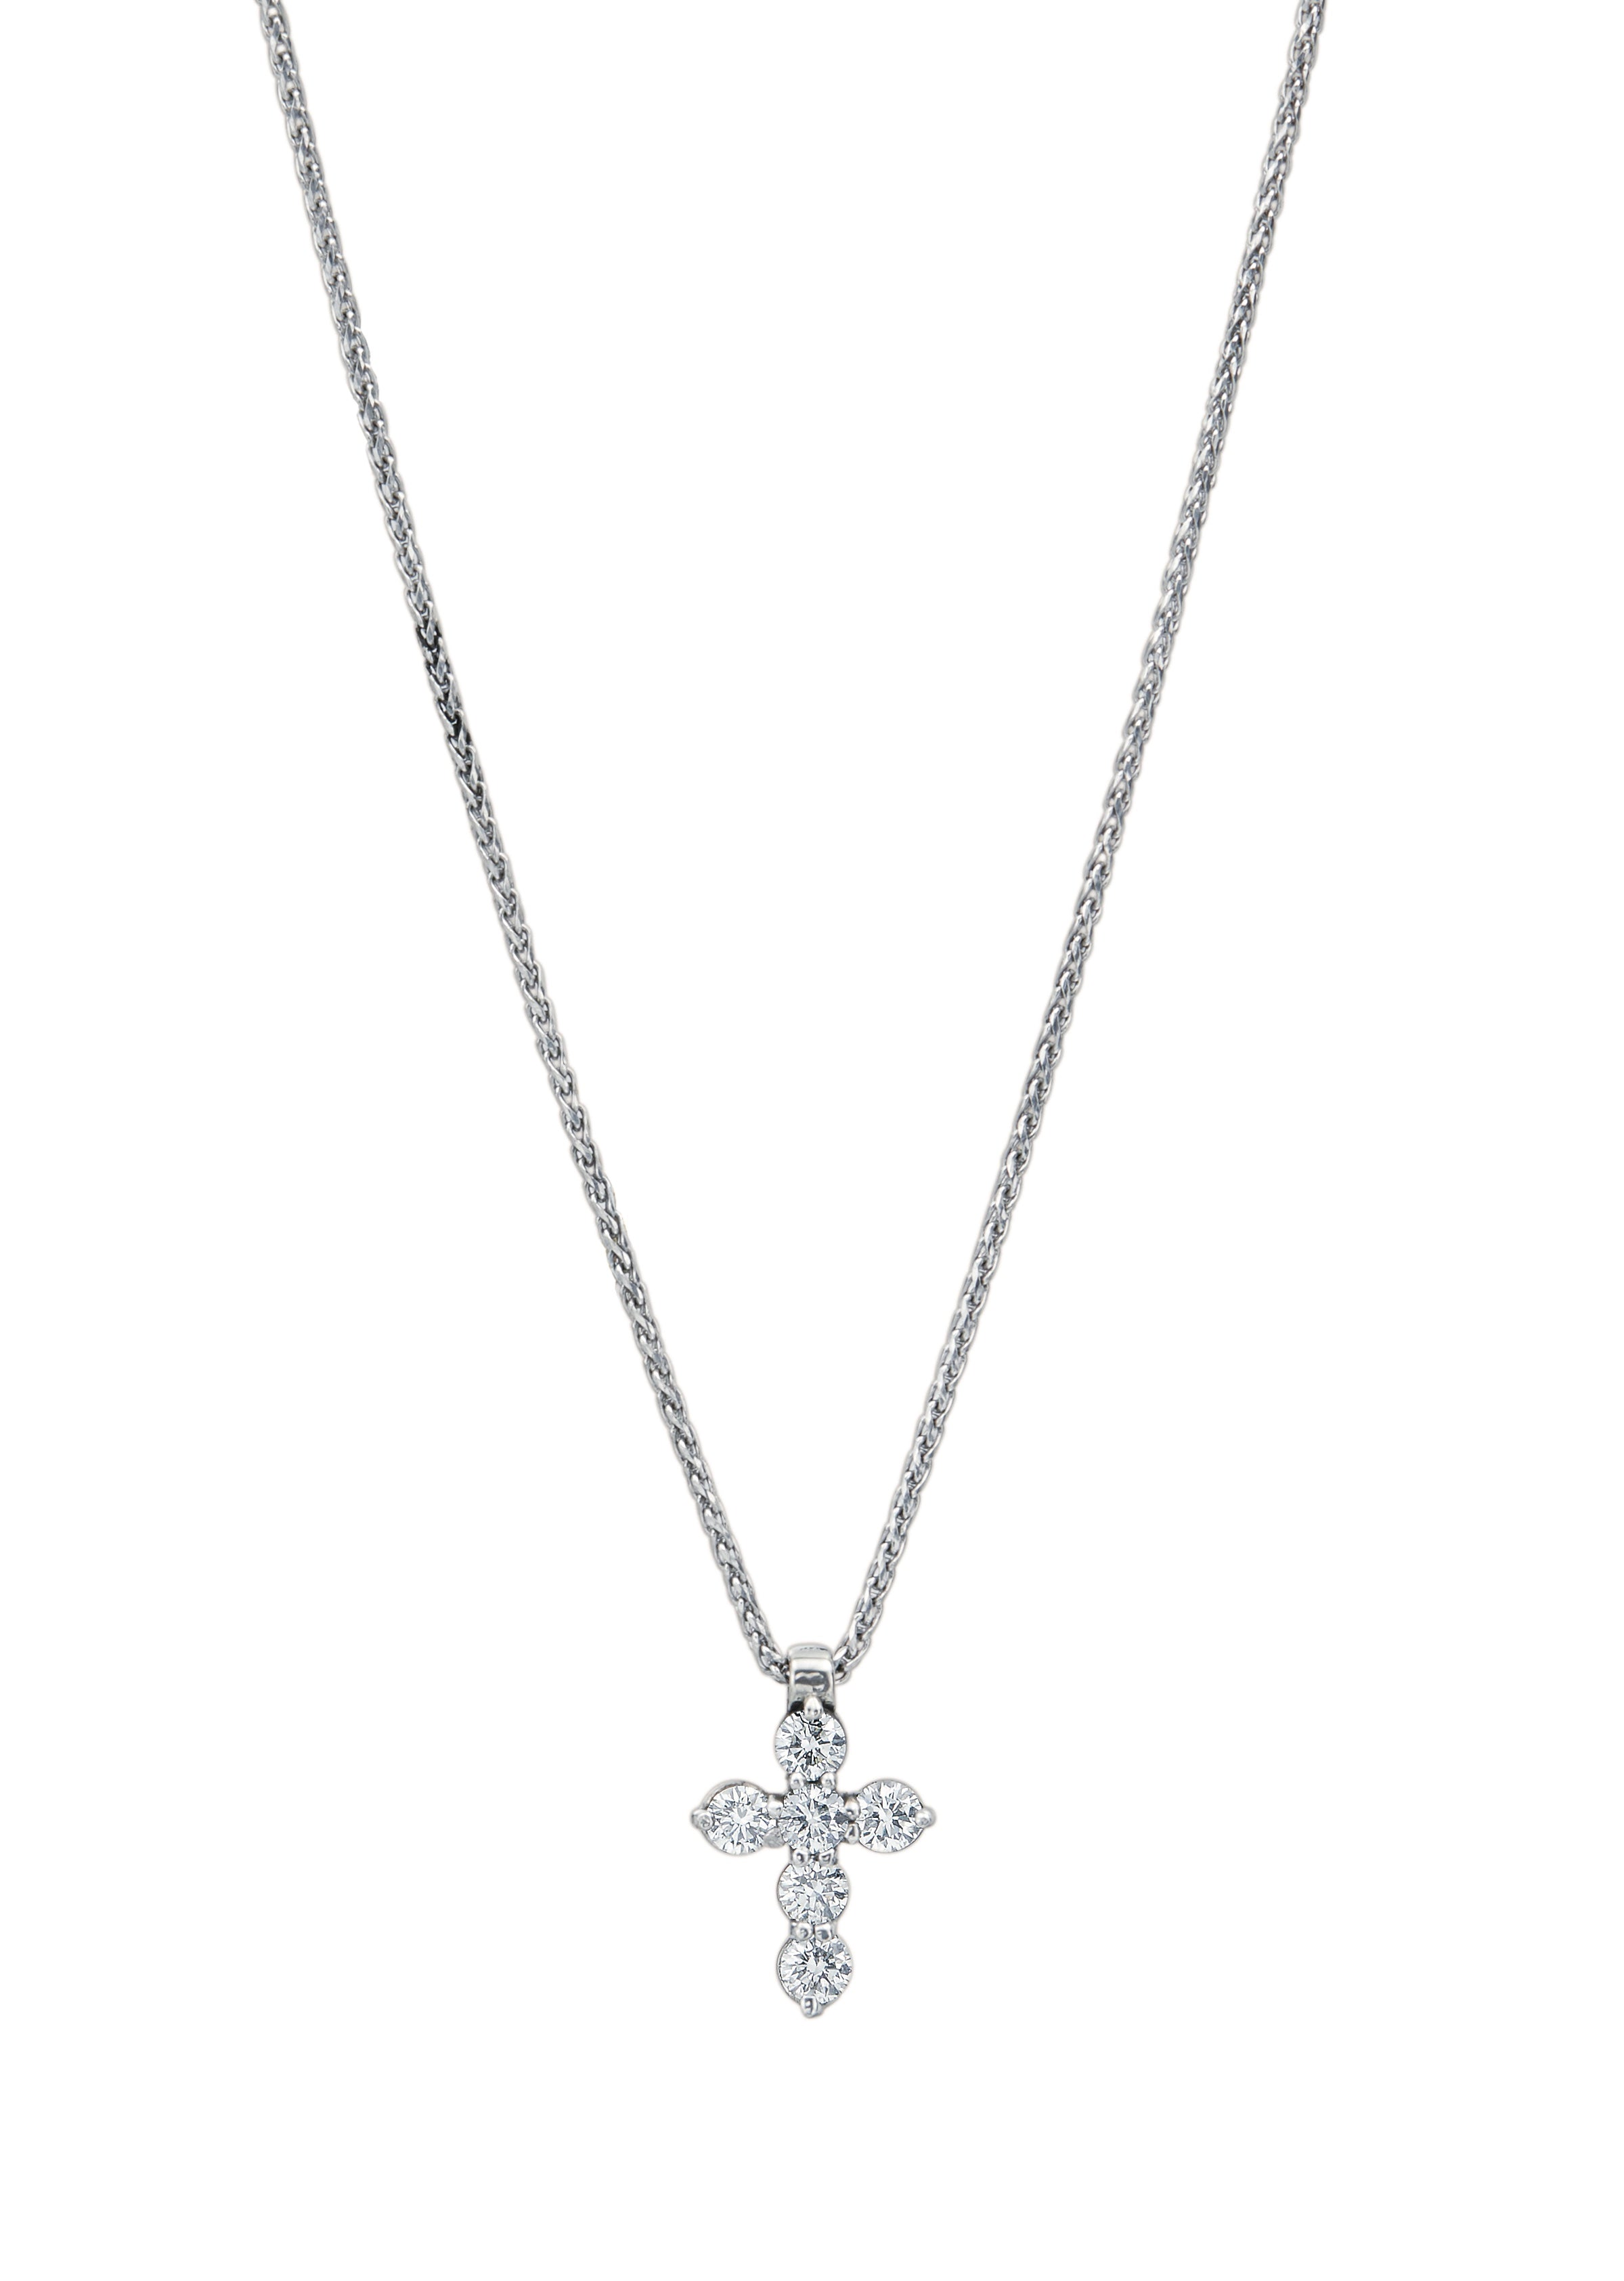 The Small Diamond Cross designed by David Gardner, 14K white gold